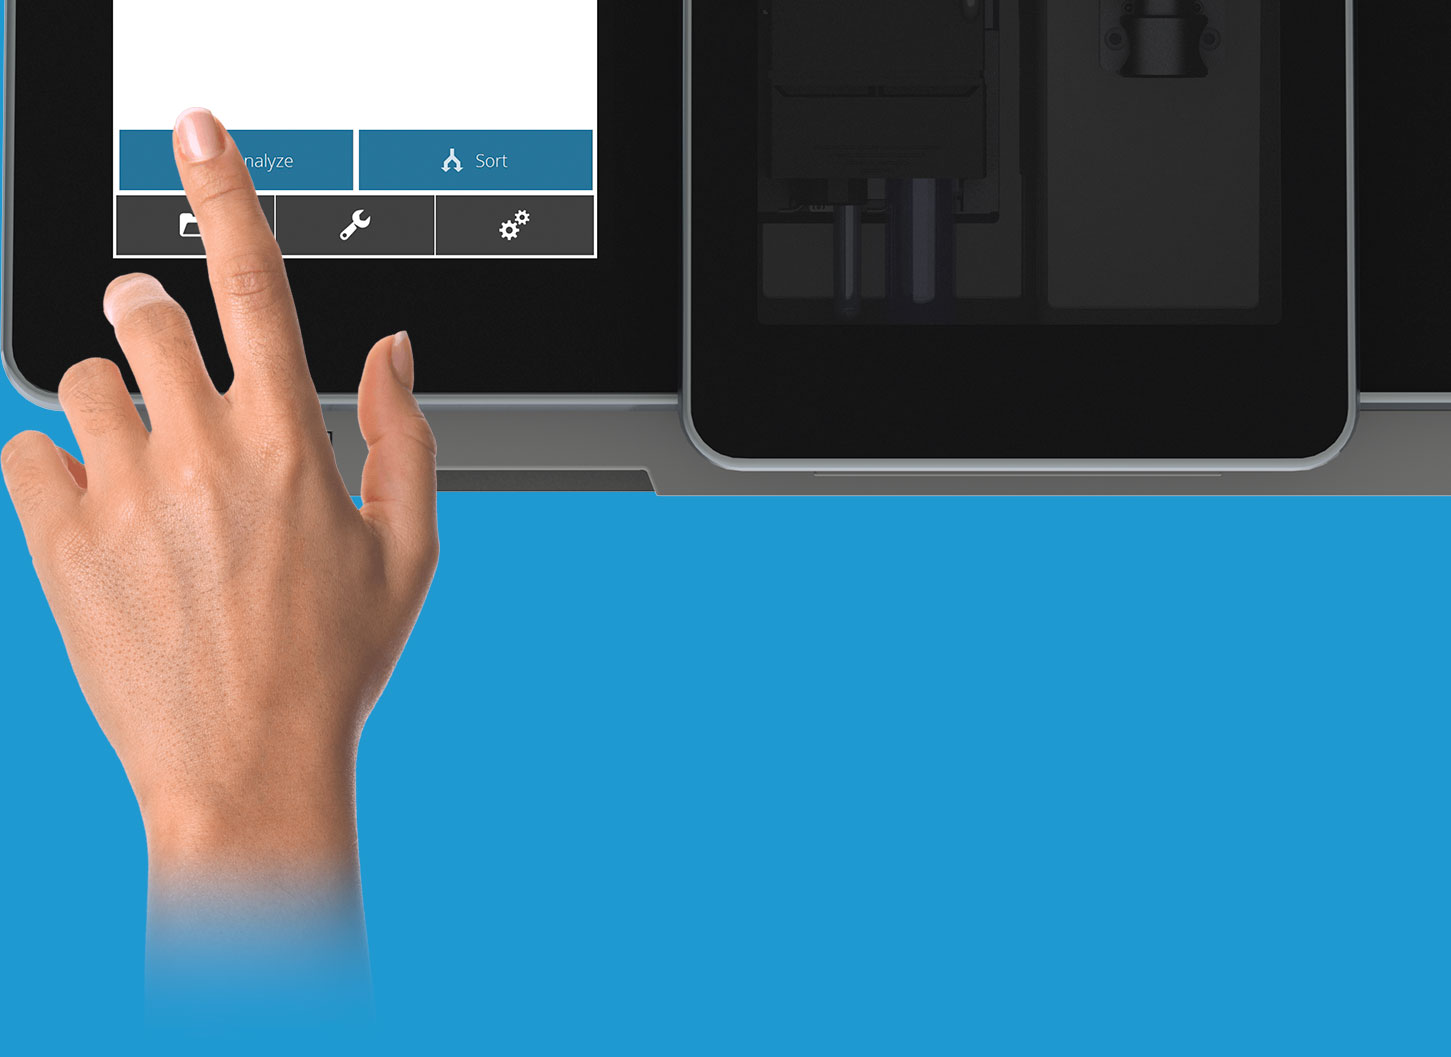 viva features touch screen small size